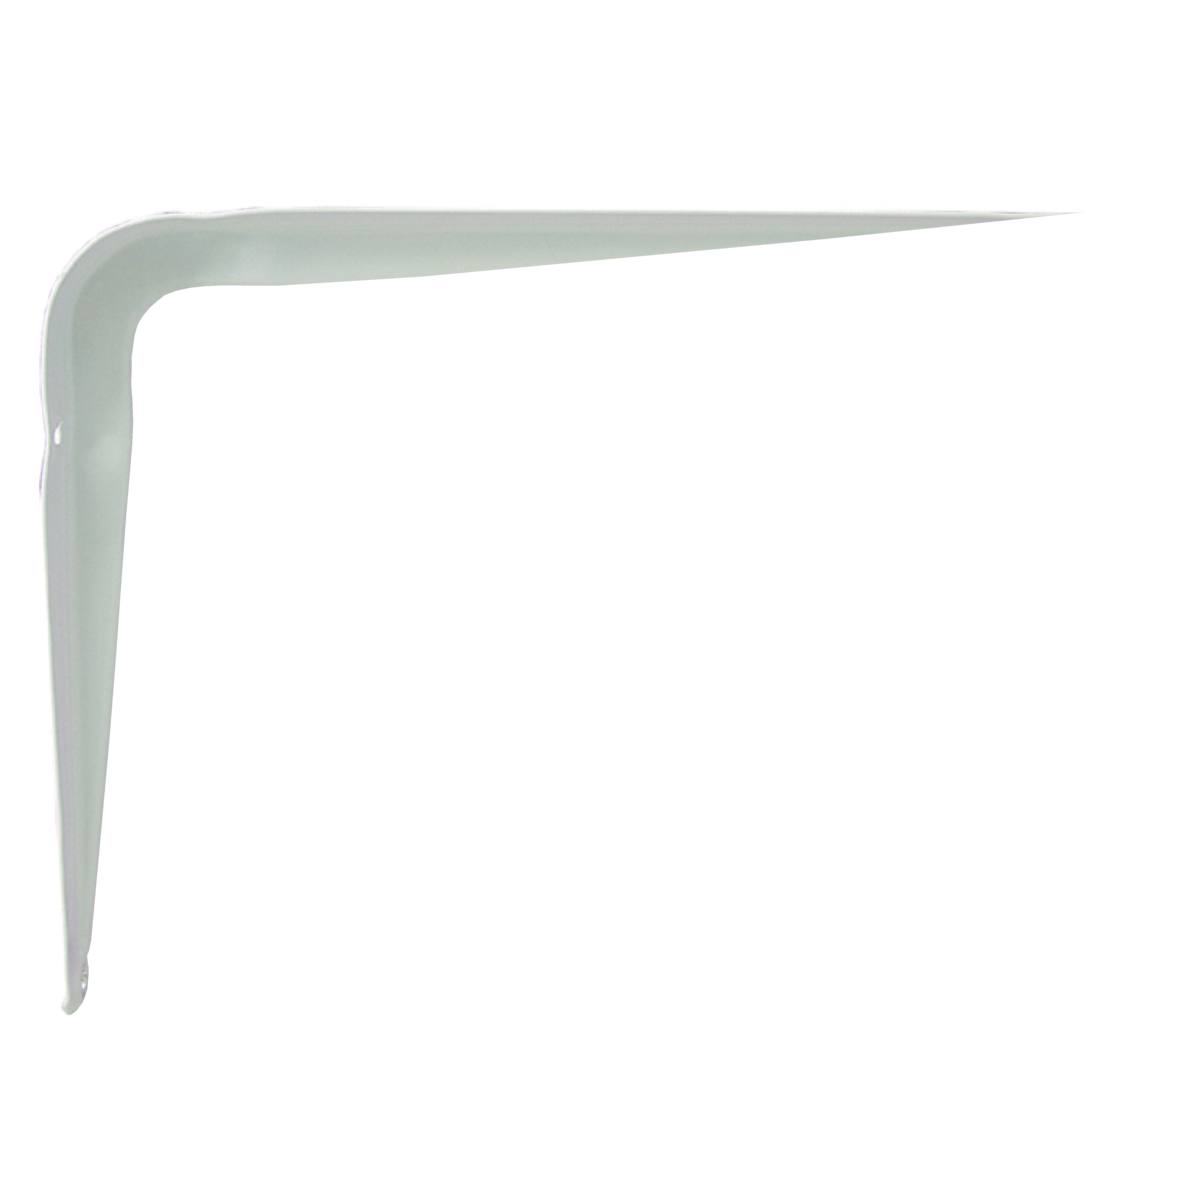 CONSOLE EMBOUTIE BLANCHE 250 x 300 MM